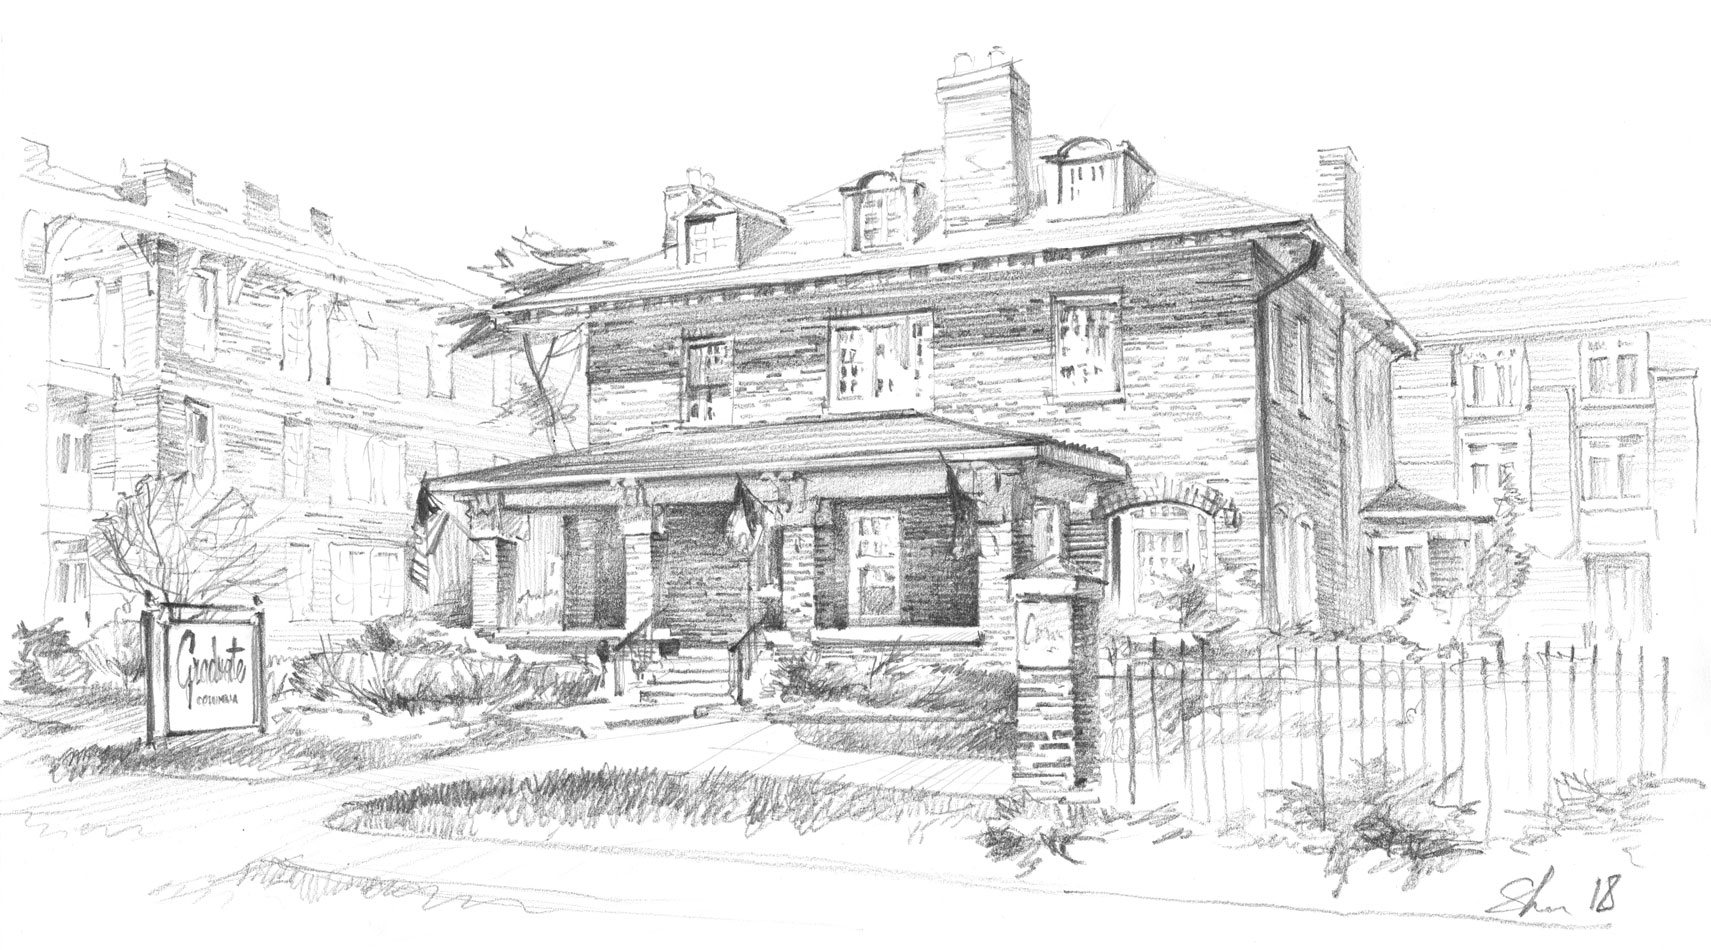 Architectural freehand rendering pencil architecture visual art  architecture illustration